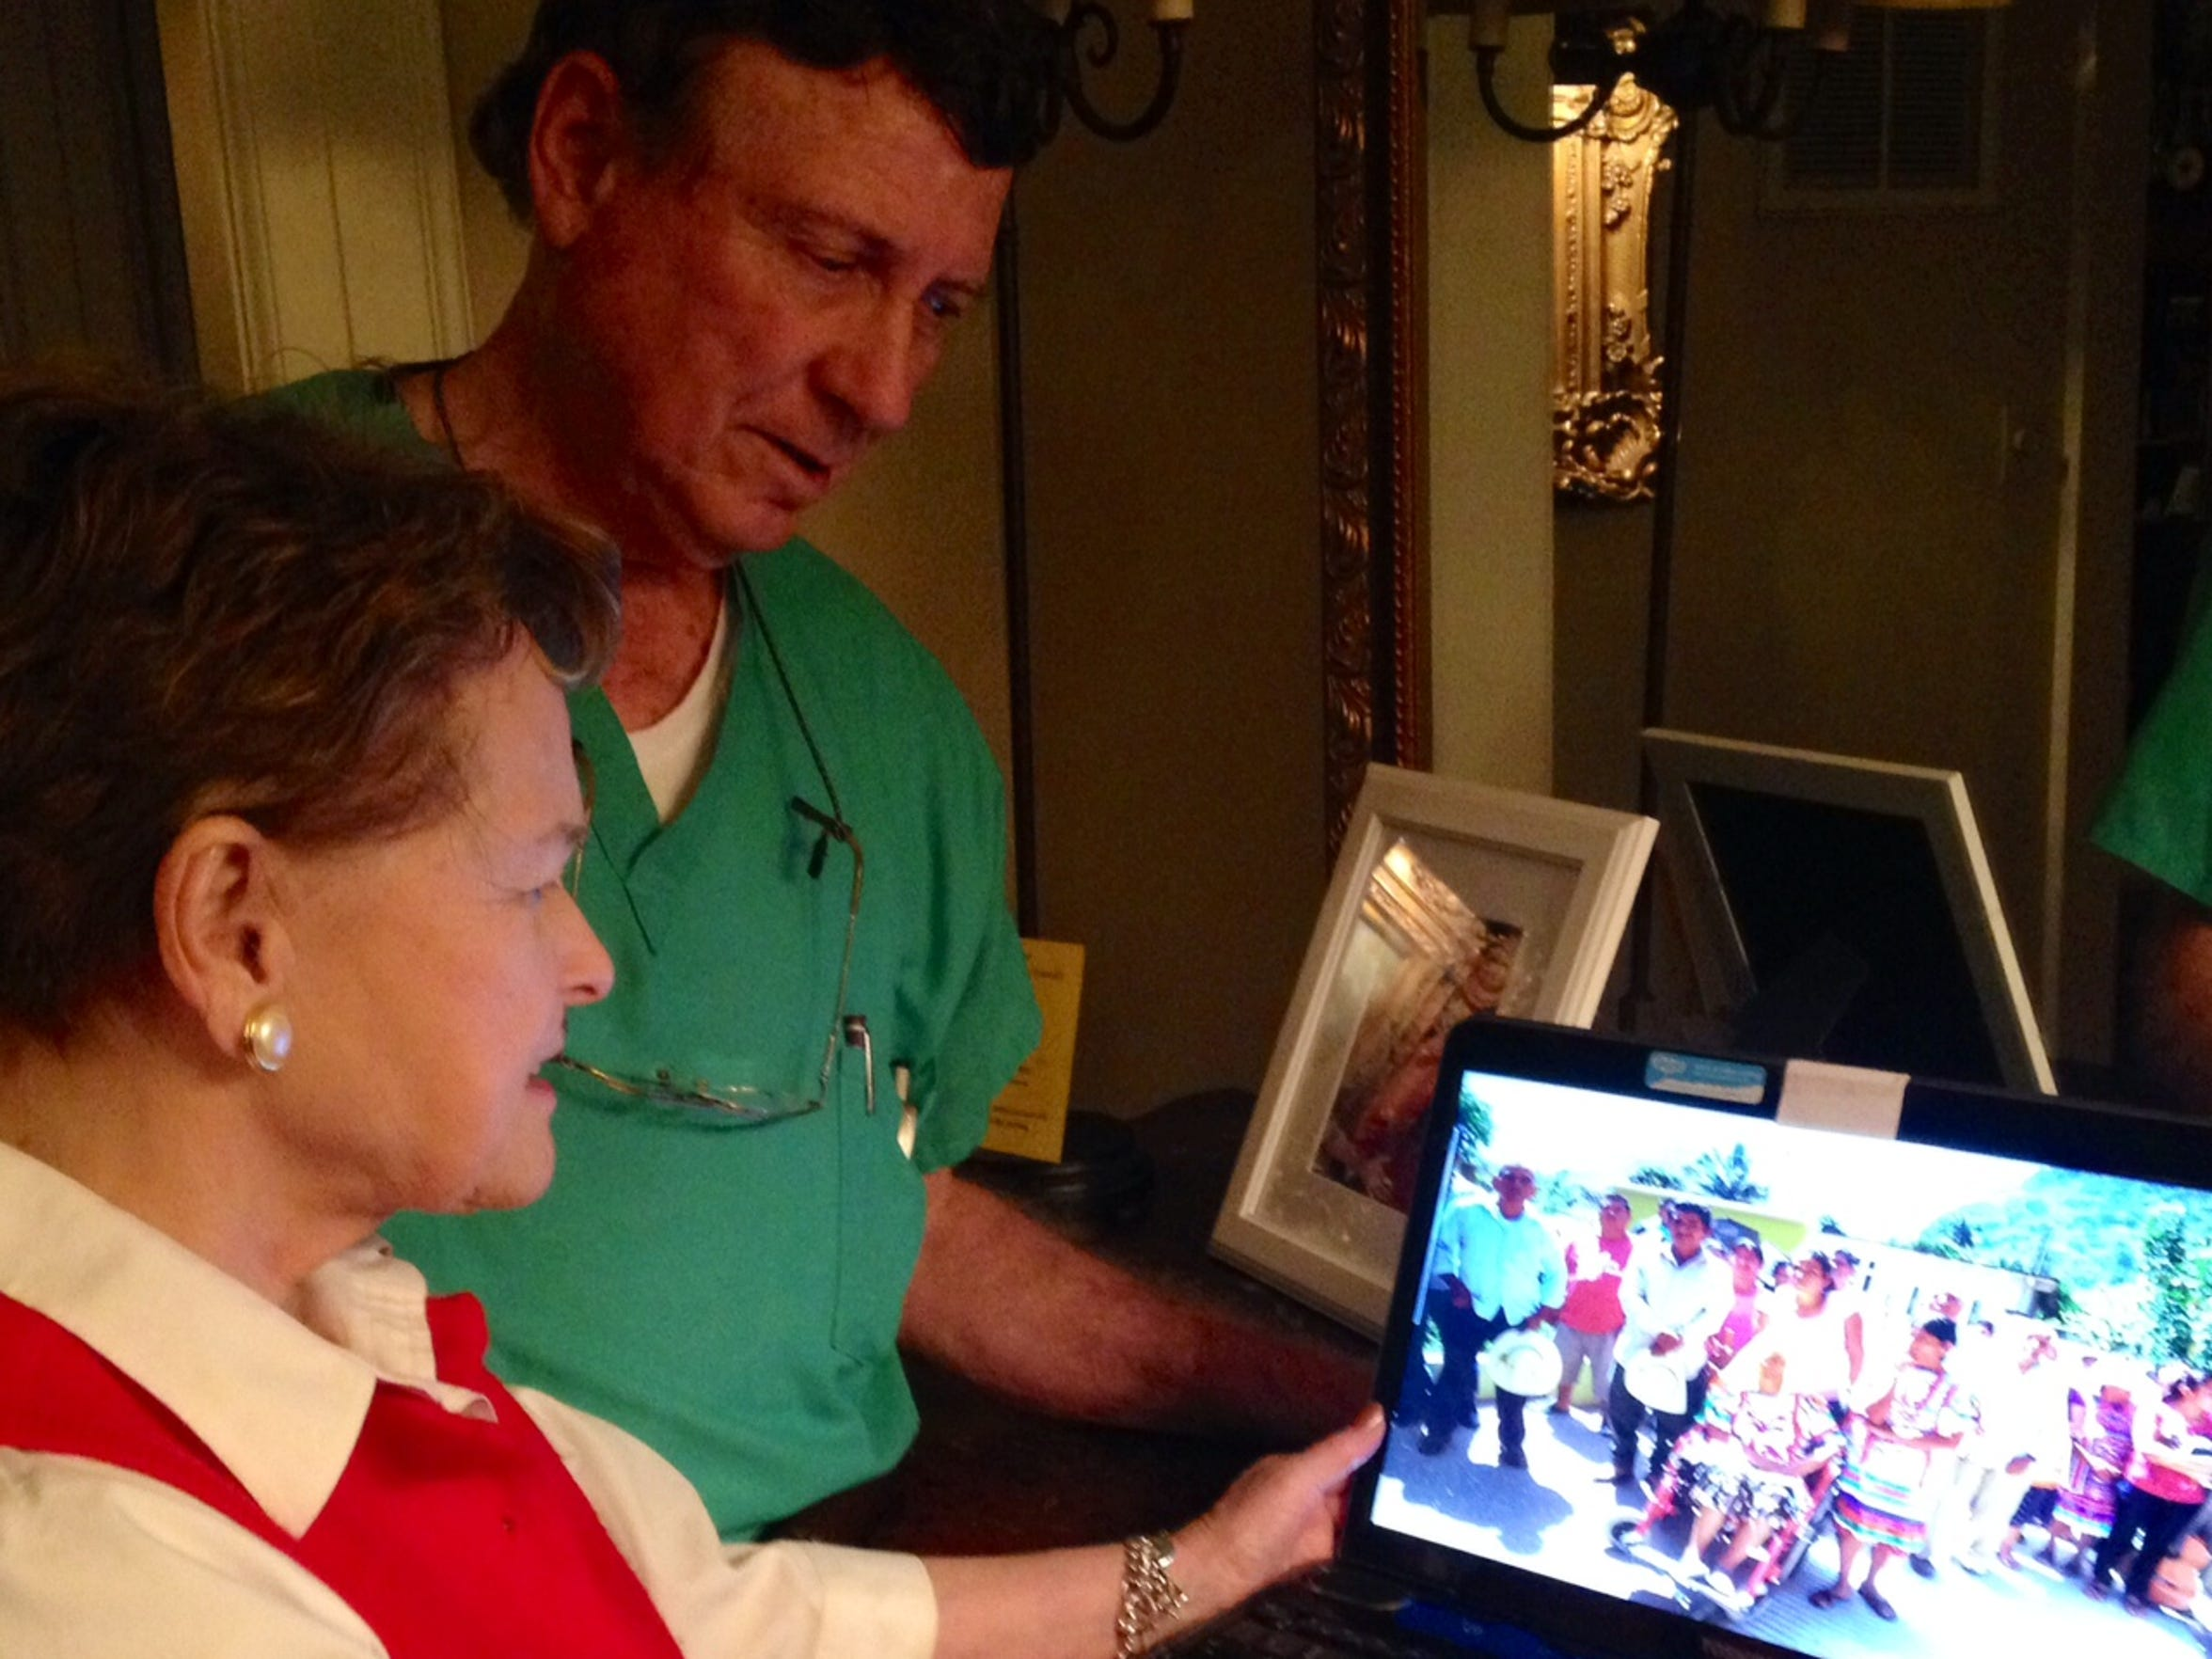 Dr. Tom Robinson and his wife, Daphne, look at a digital